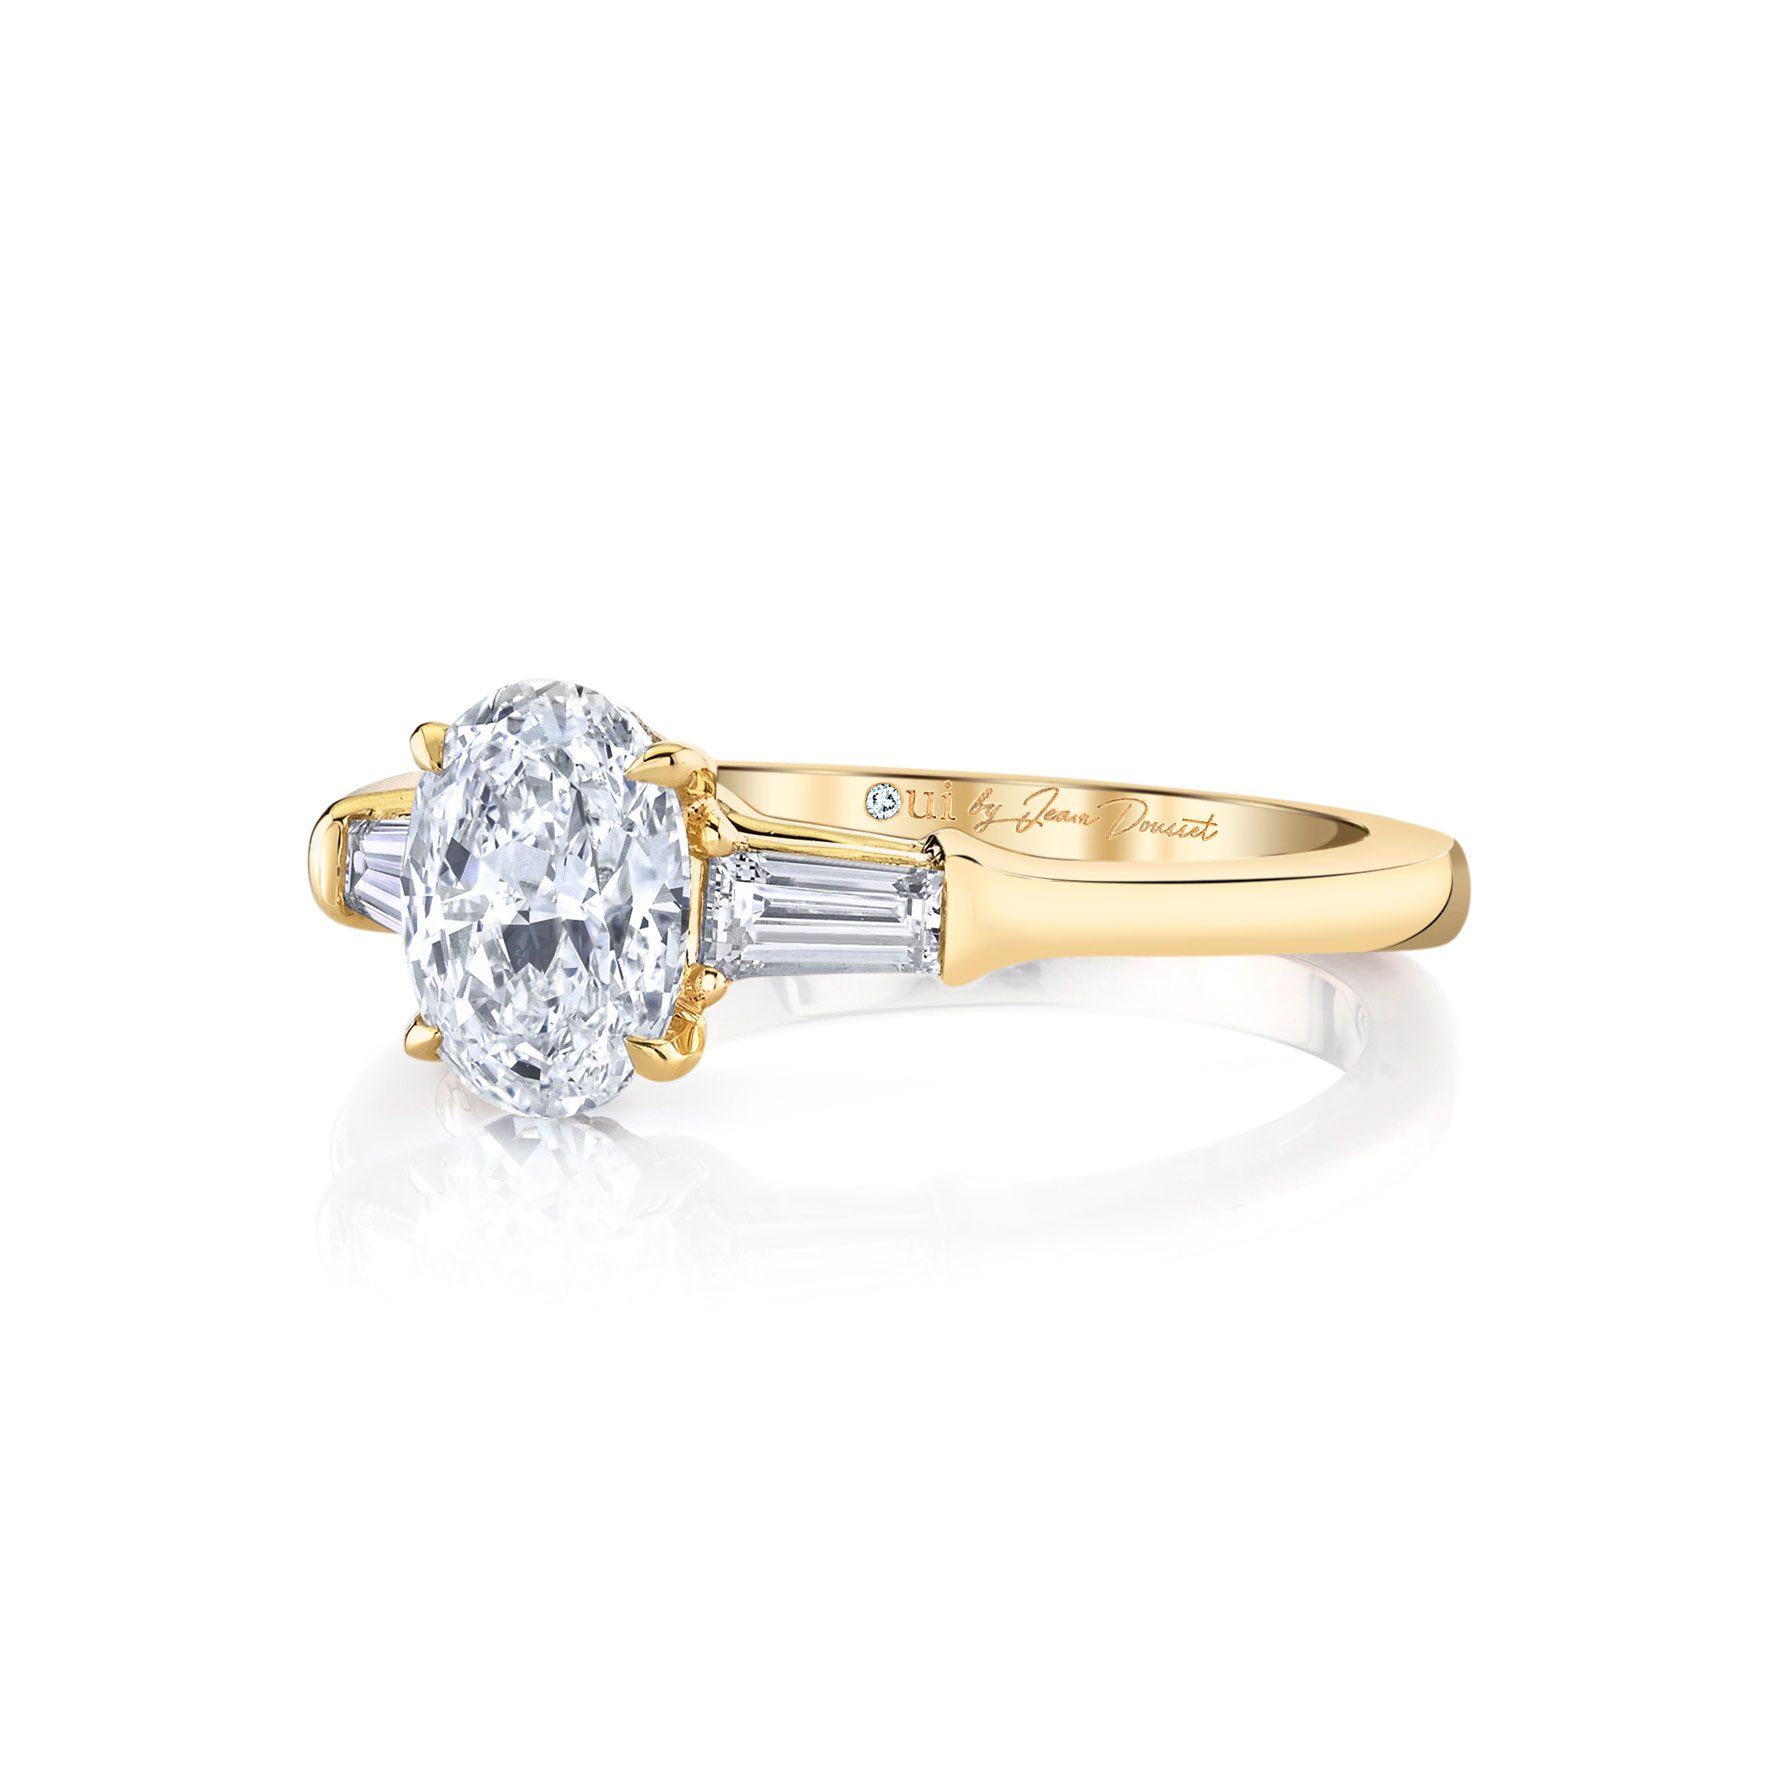 Claire Oval Three Stone Engagement Ring with tapered baguette diamond side stones in 18k Yellow Gold Side View by Oui by Jean Dousset